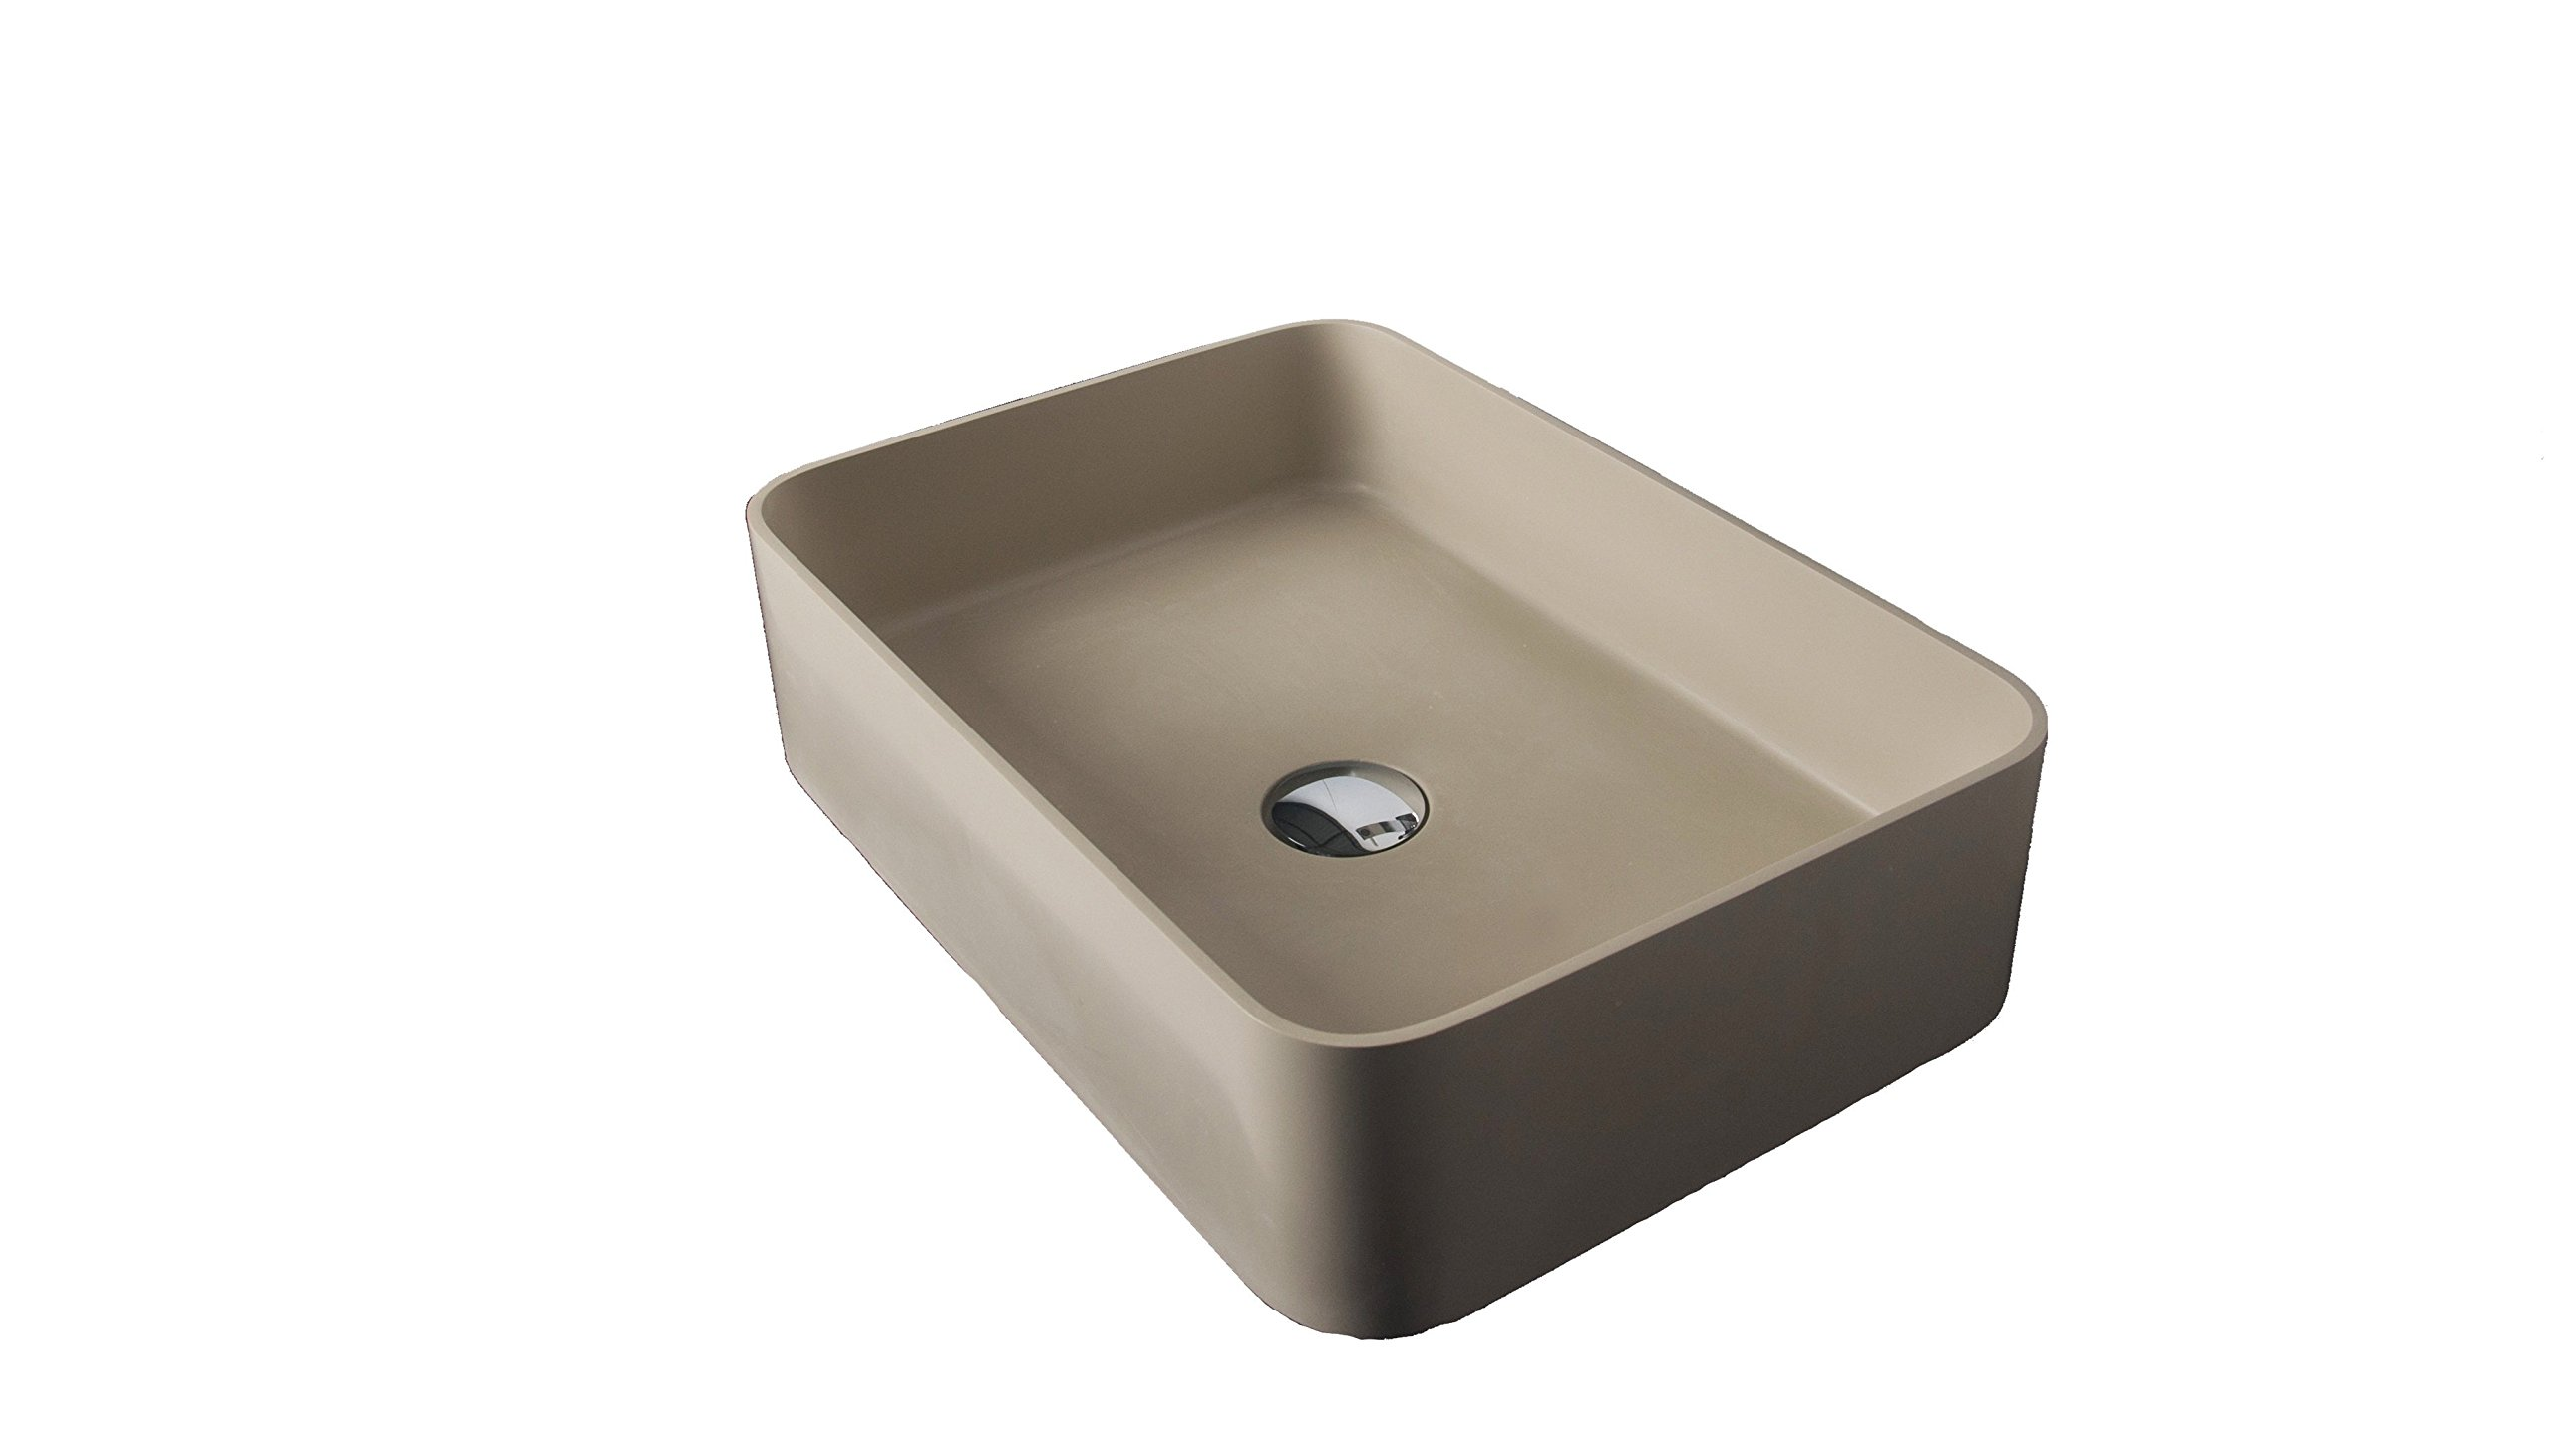 ID Solid Surface 20 in. Square Vessel Sink Bowl Above Counter Sink Lavatory